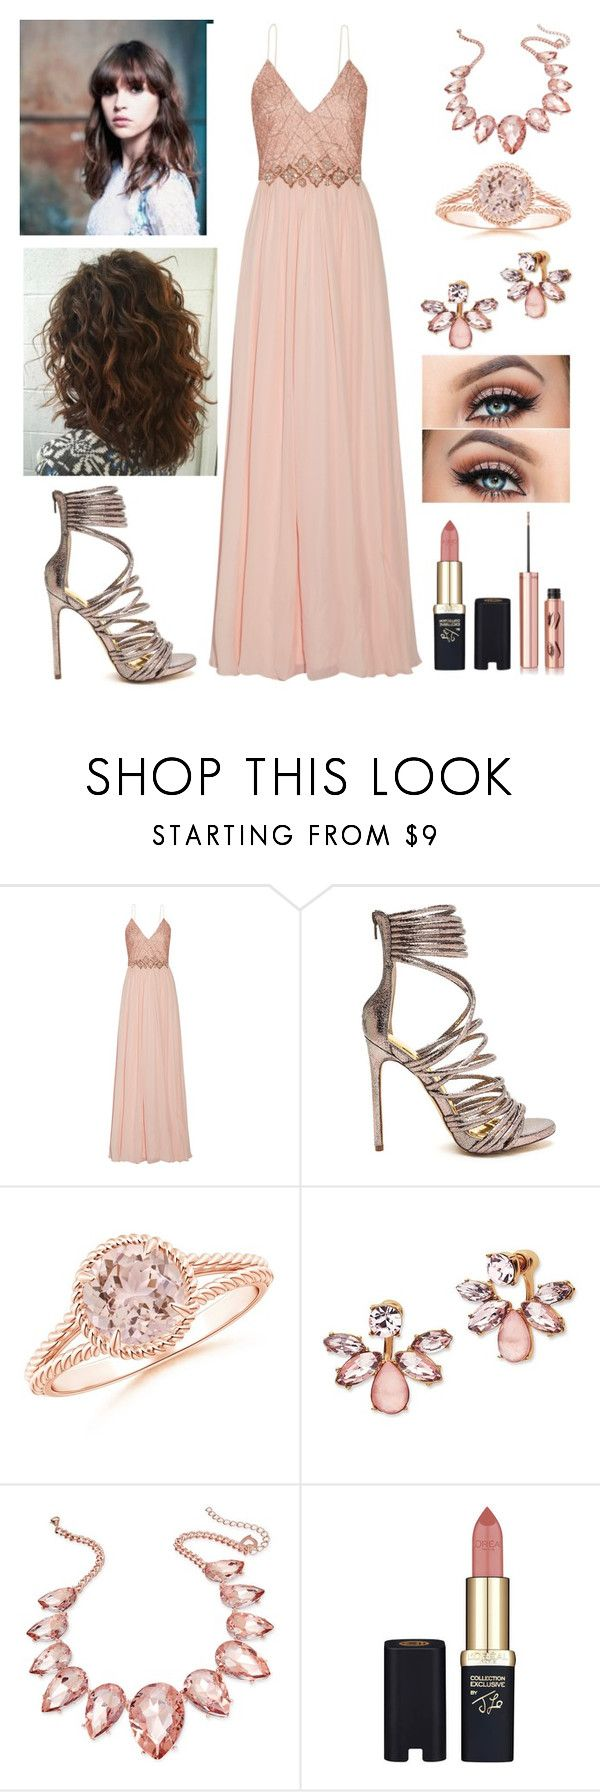 """Adara Alcott ~ Yule Ball"" by accio-hogwarts-81 ❤ liked on Polyvore featuring Badgley Mischka, Marchesa, Thalia Sodi, L'Oréal Paris and Charlotte Tilbury"